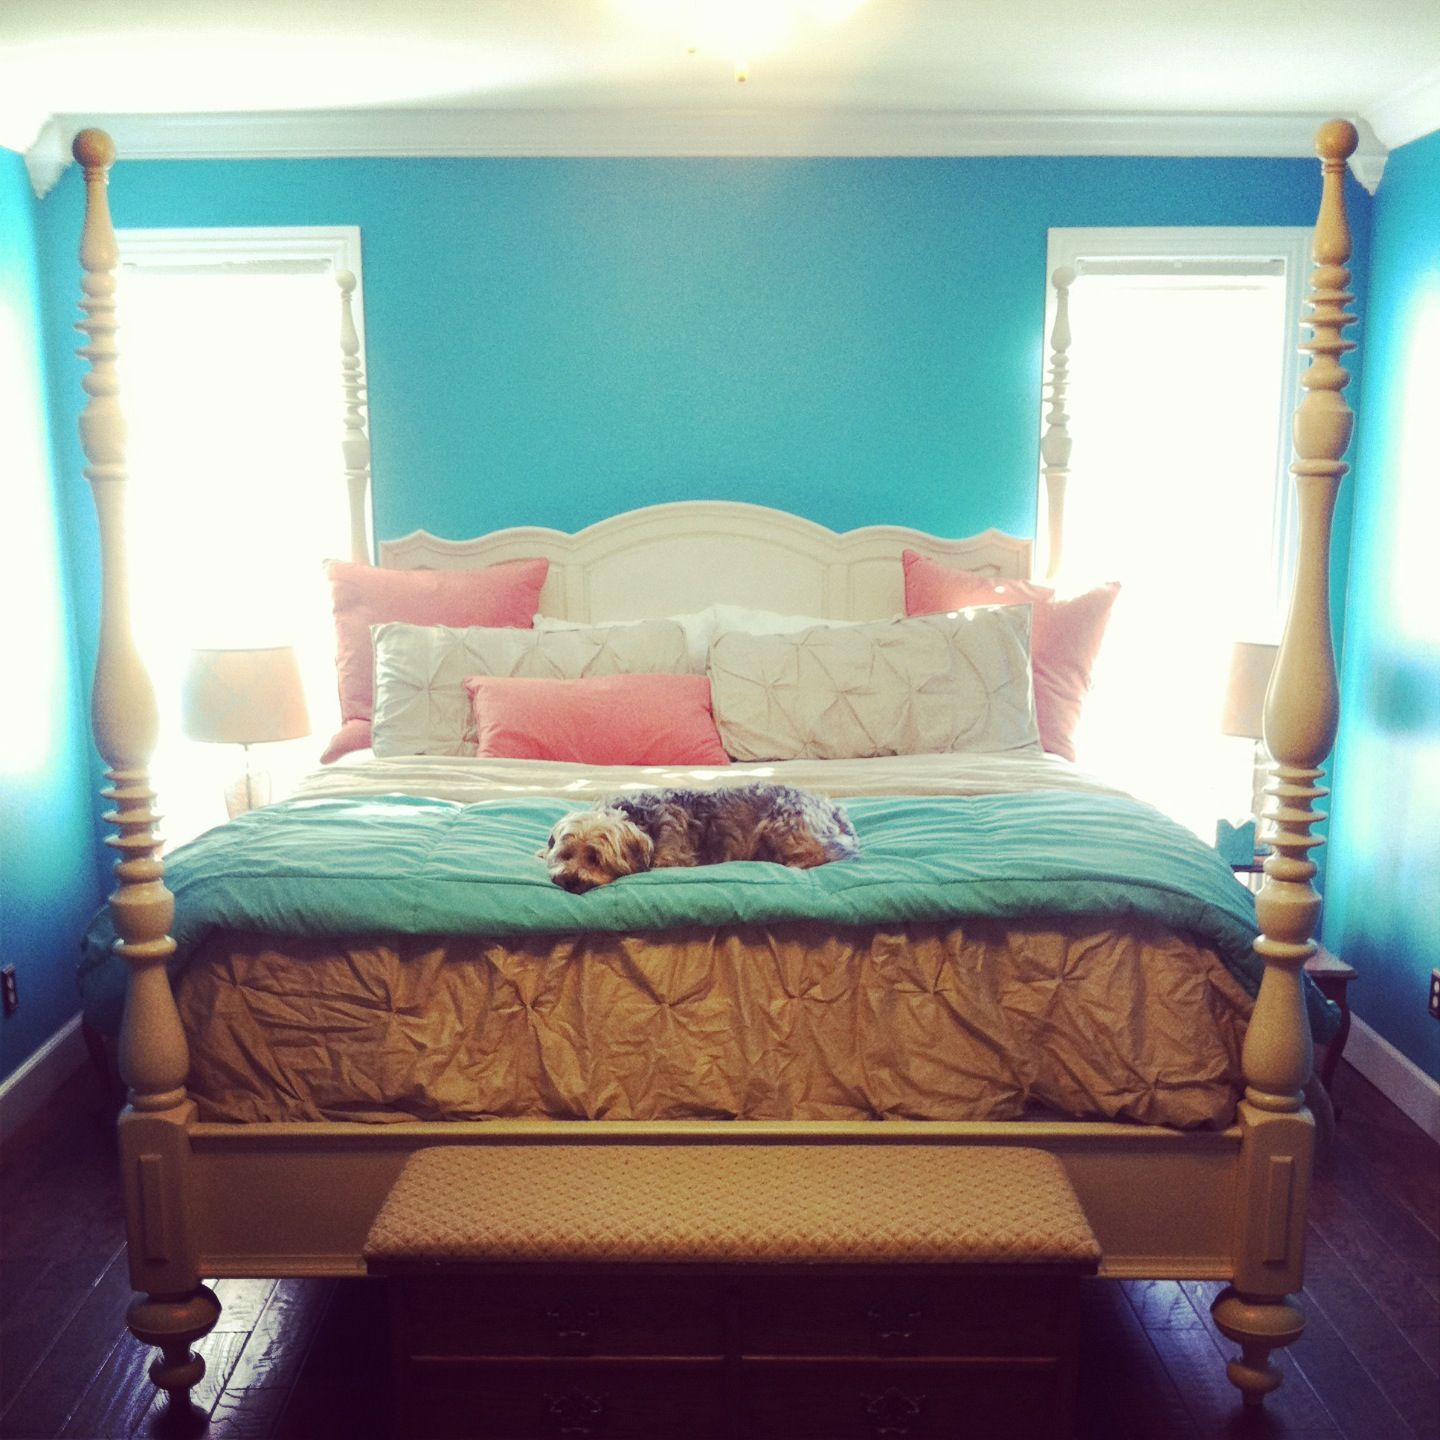 Turquoise and coral bedroom ideas  Bedroom turquoise